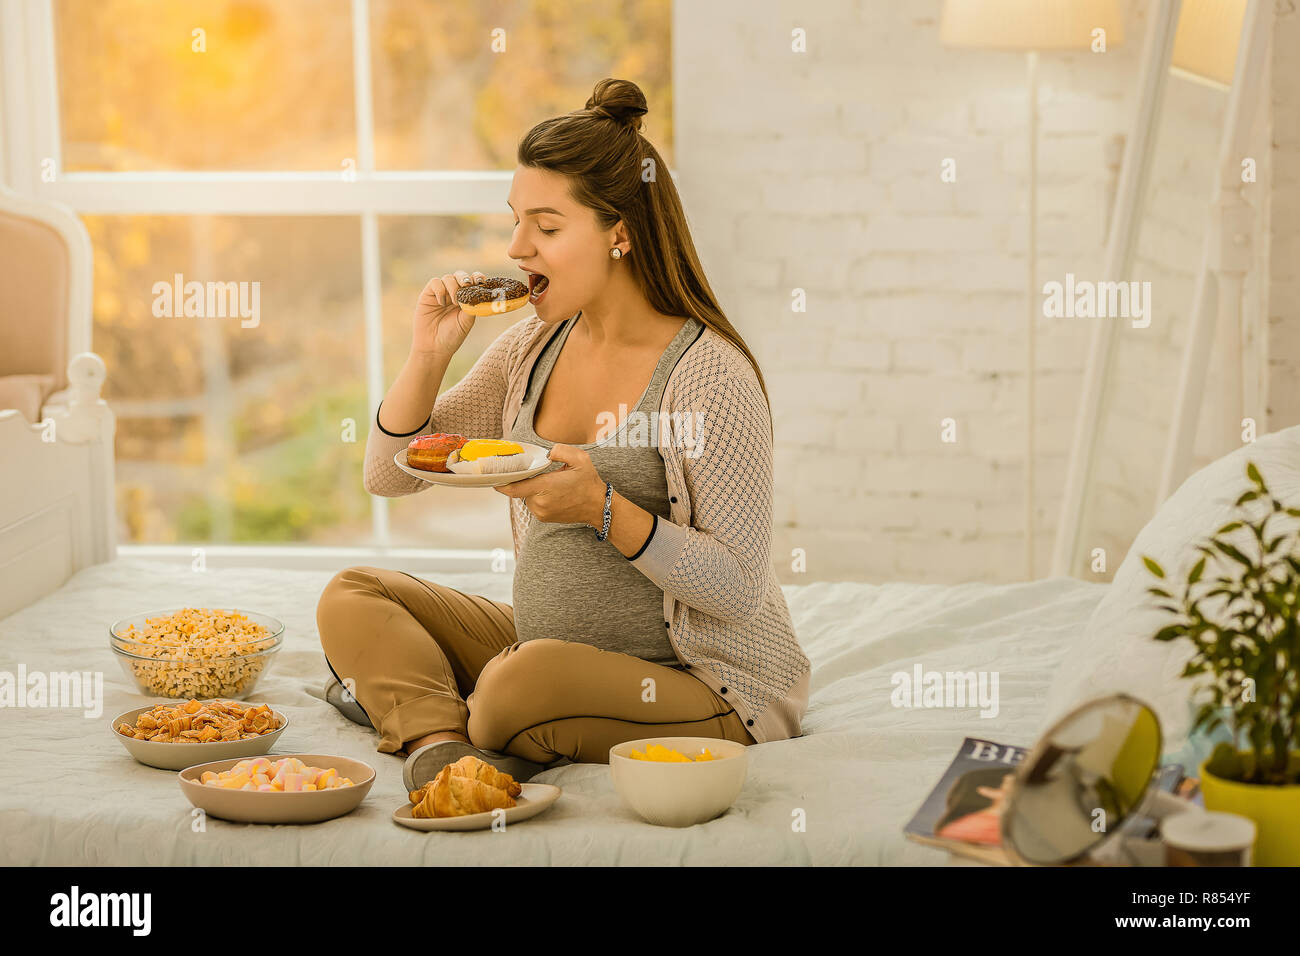 The pregnancy diet  The woman eating a lot of sweets while pregnancy